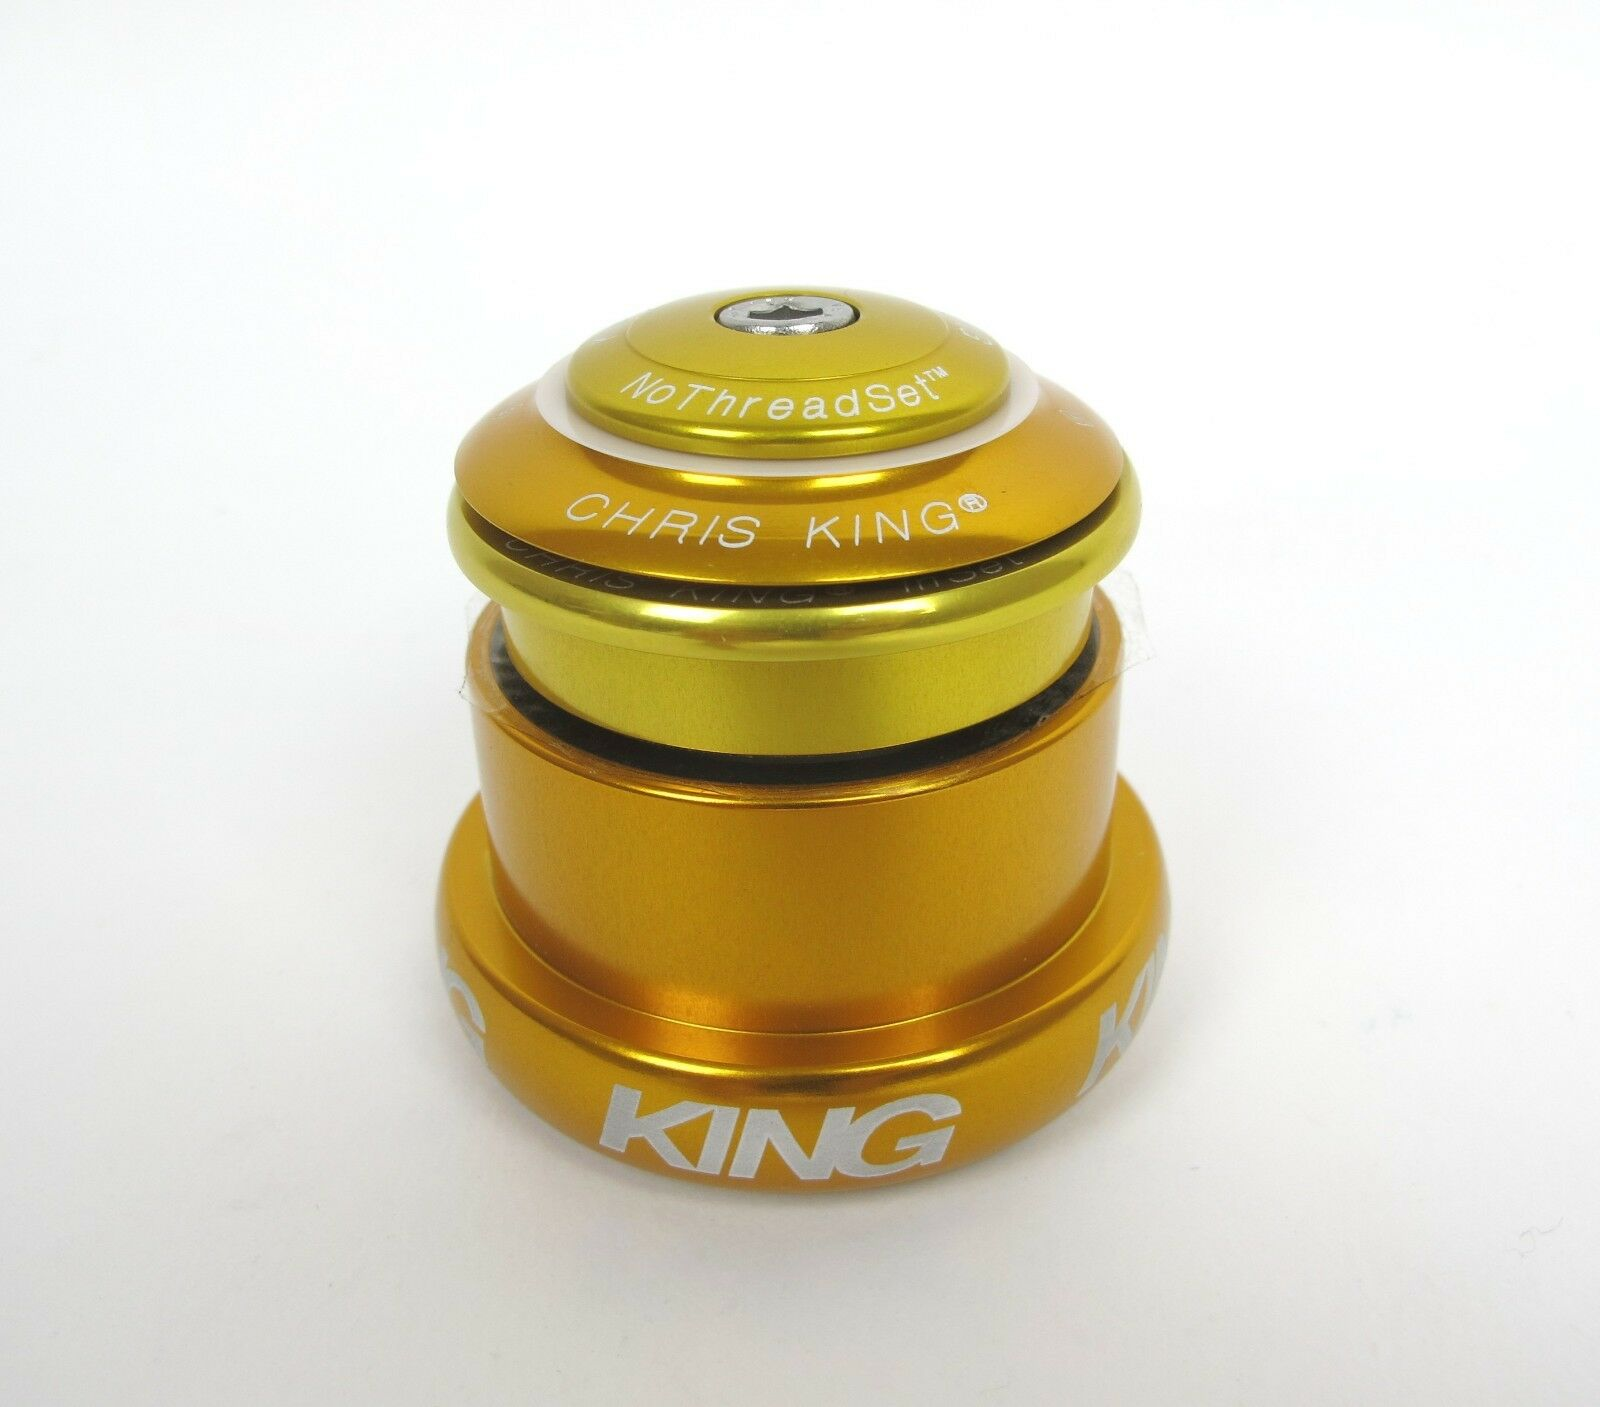 NEW Chris King i3 InSet Headset - gold - 44   49 Tapered - 10 Year Warranty